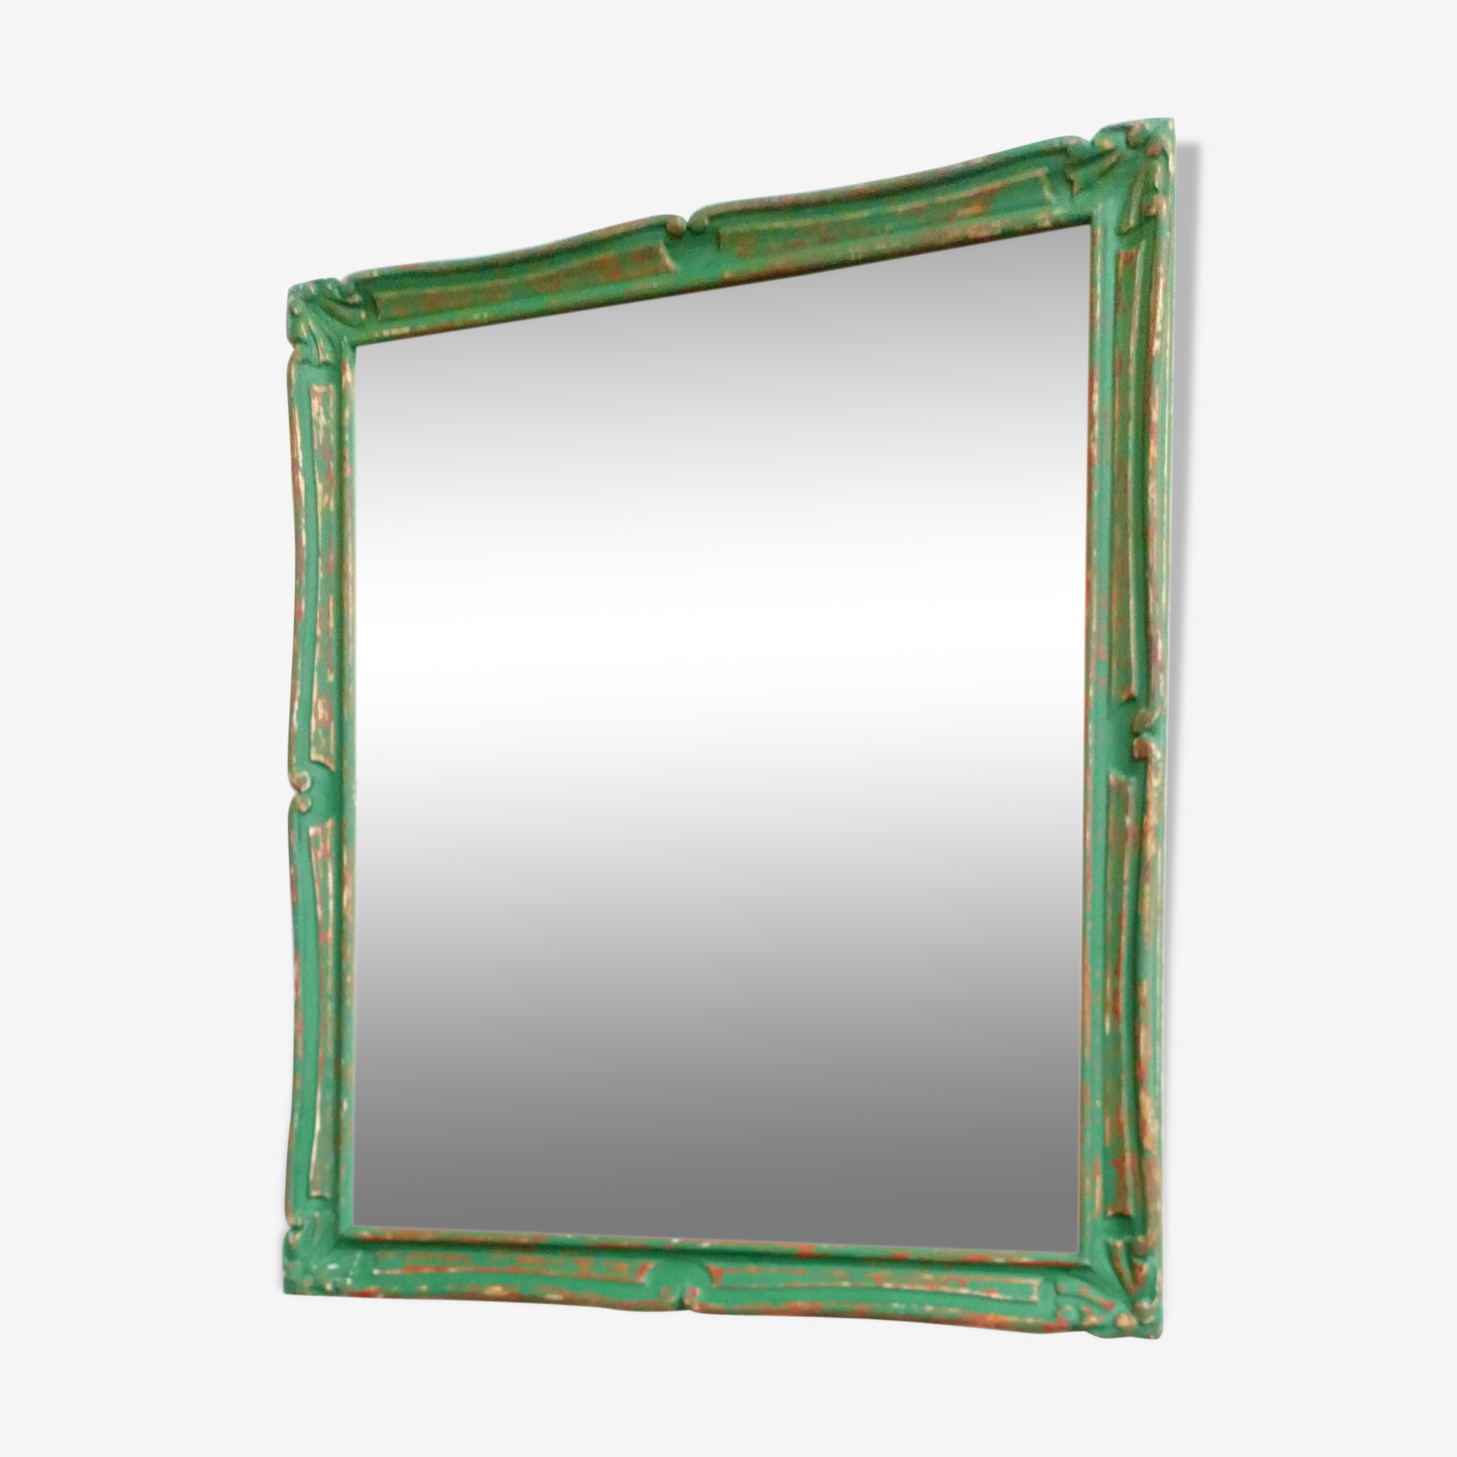 Vintage patina green and gold mirror 69x79cm